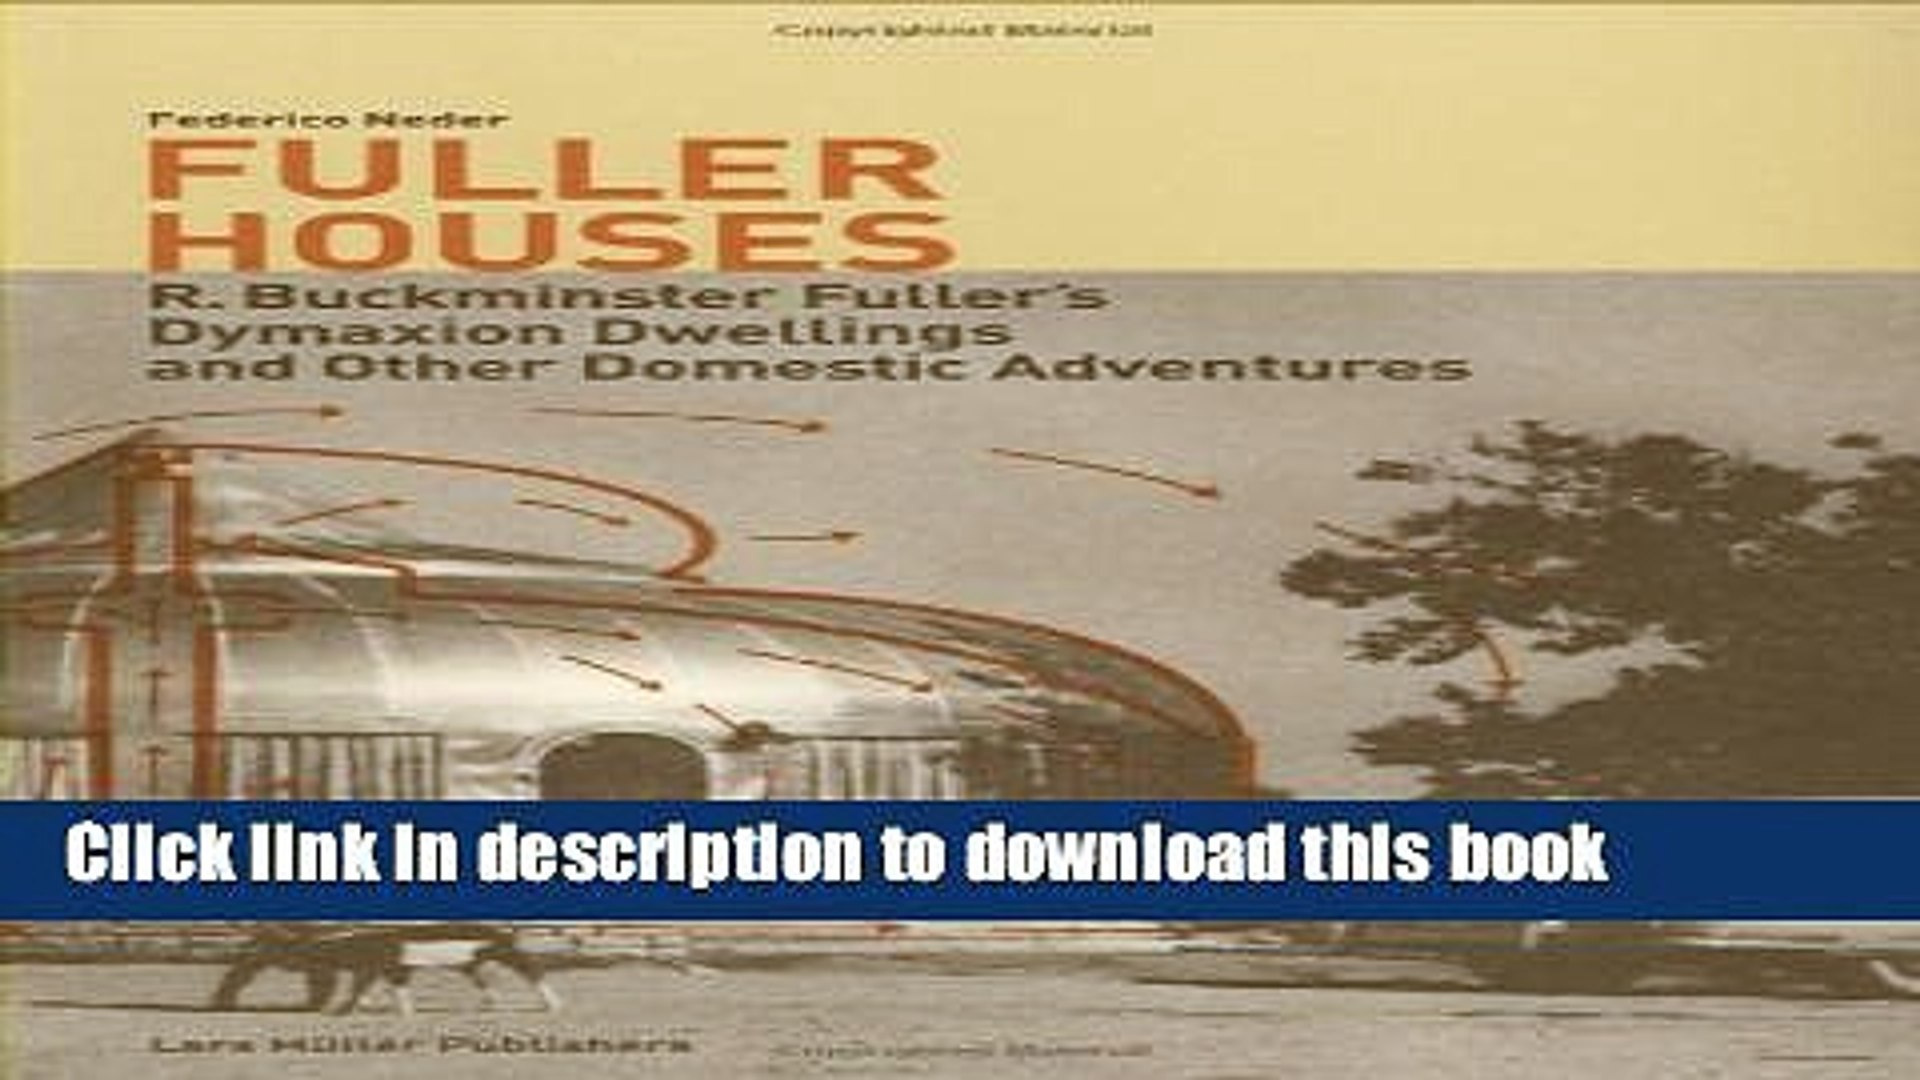 Read Book Fuller Houses: R. Buckminster Fuller s Dymaxion Dwellings and Other Domestic Adventures